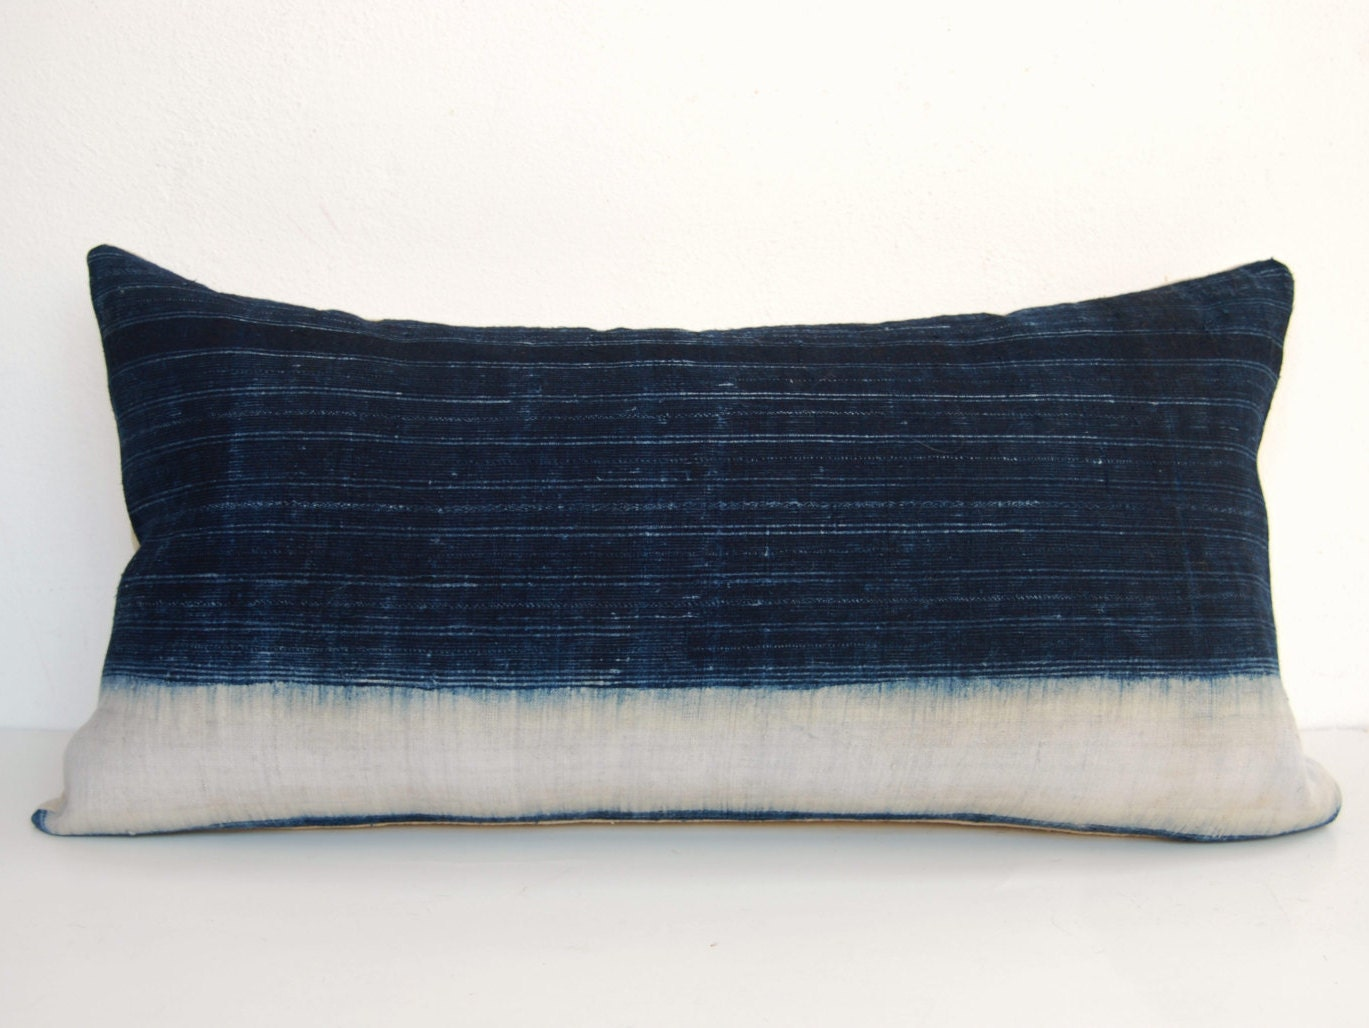 Lumbar Pillow Hmong Pillow Cover Indigo Pillow Batik